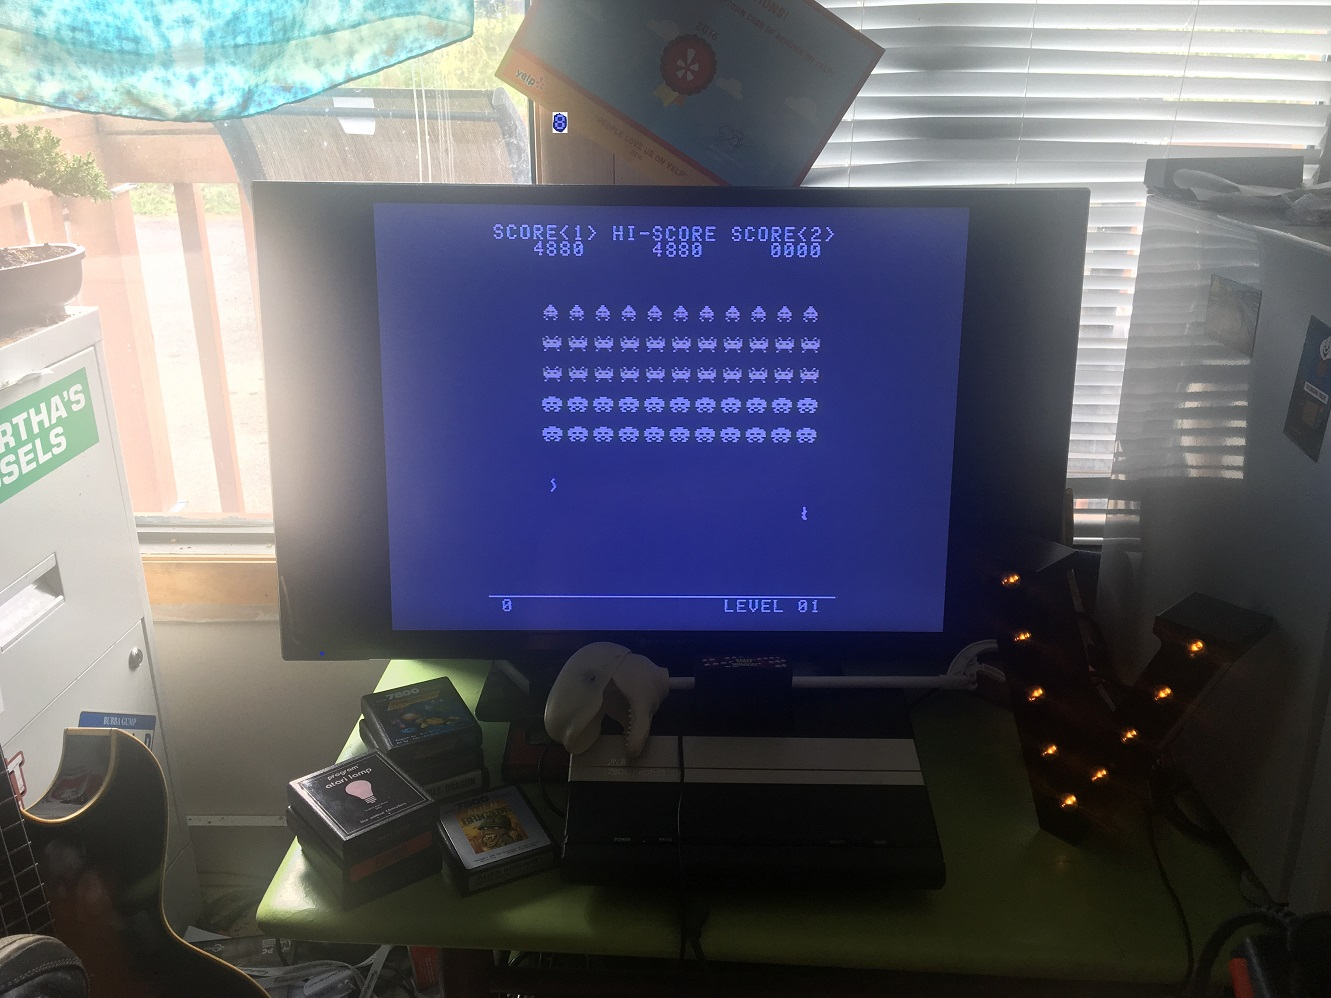 Space Invaders [Normal/No Shields] 4,880 points